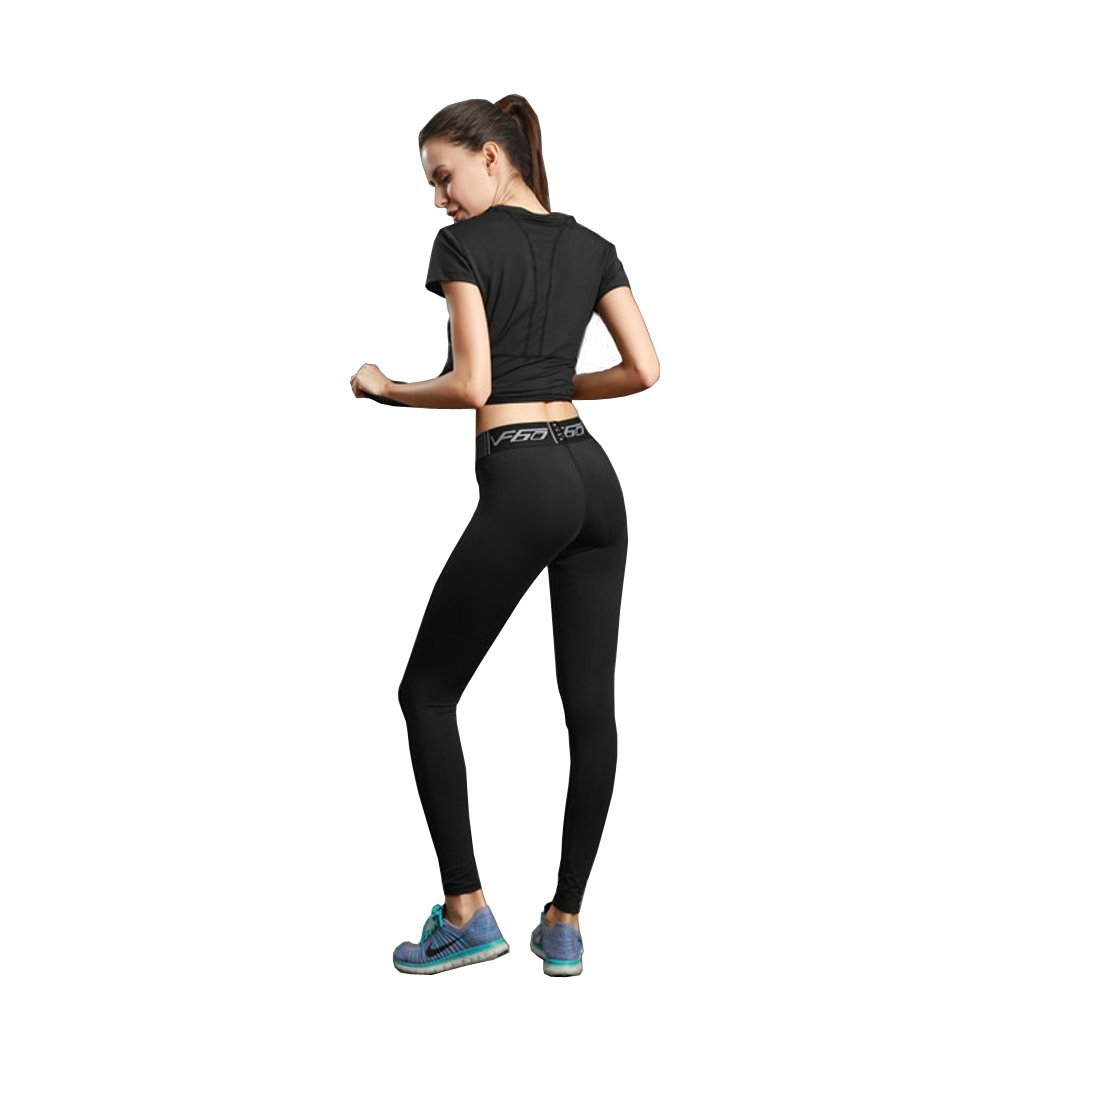 7cb730a607183 Amazon.com: Klorify Black Running Legging For Woman Yoga Pant Workout Tight  Exercise Trouser: Clothing